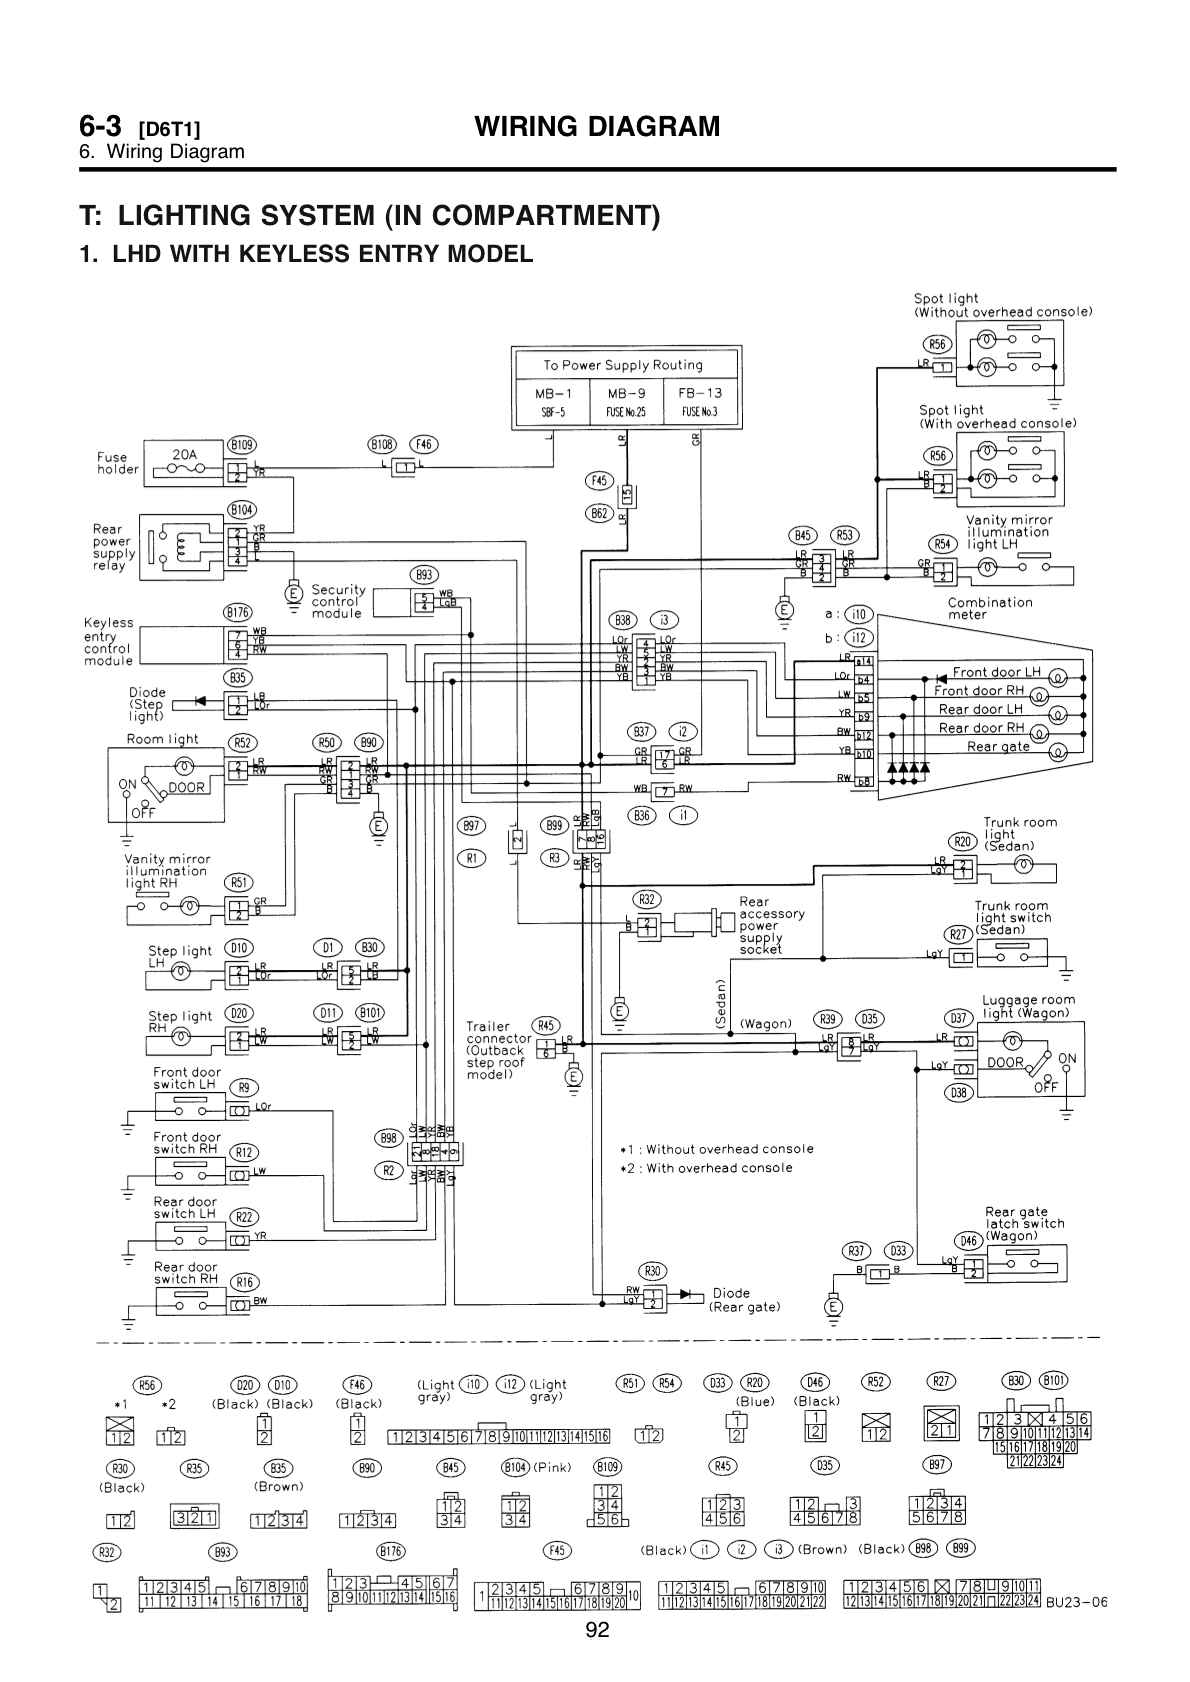 2000 Subaru Legacy Wiring Diagram. subaru baja 2 5 2003 auto images and  specification. 06 subaru outback timing belt diagramkawasaki mule 2510. subaru  legacy window switch wiring diagrams wiring library. 2000 subaru2002-acura-tl-radio.info